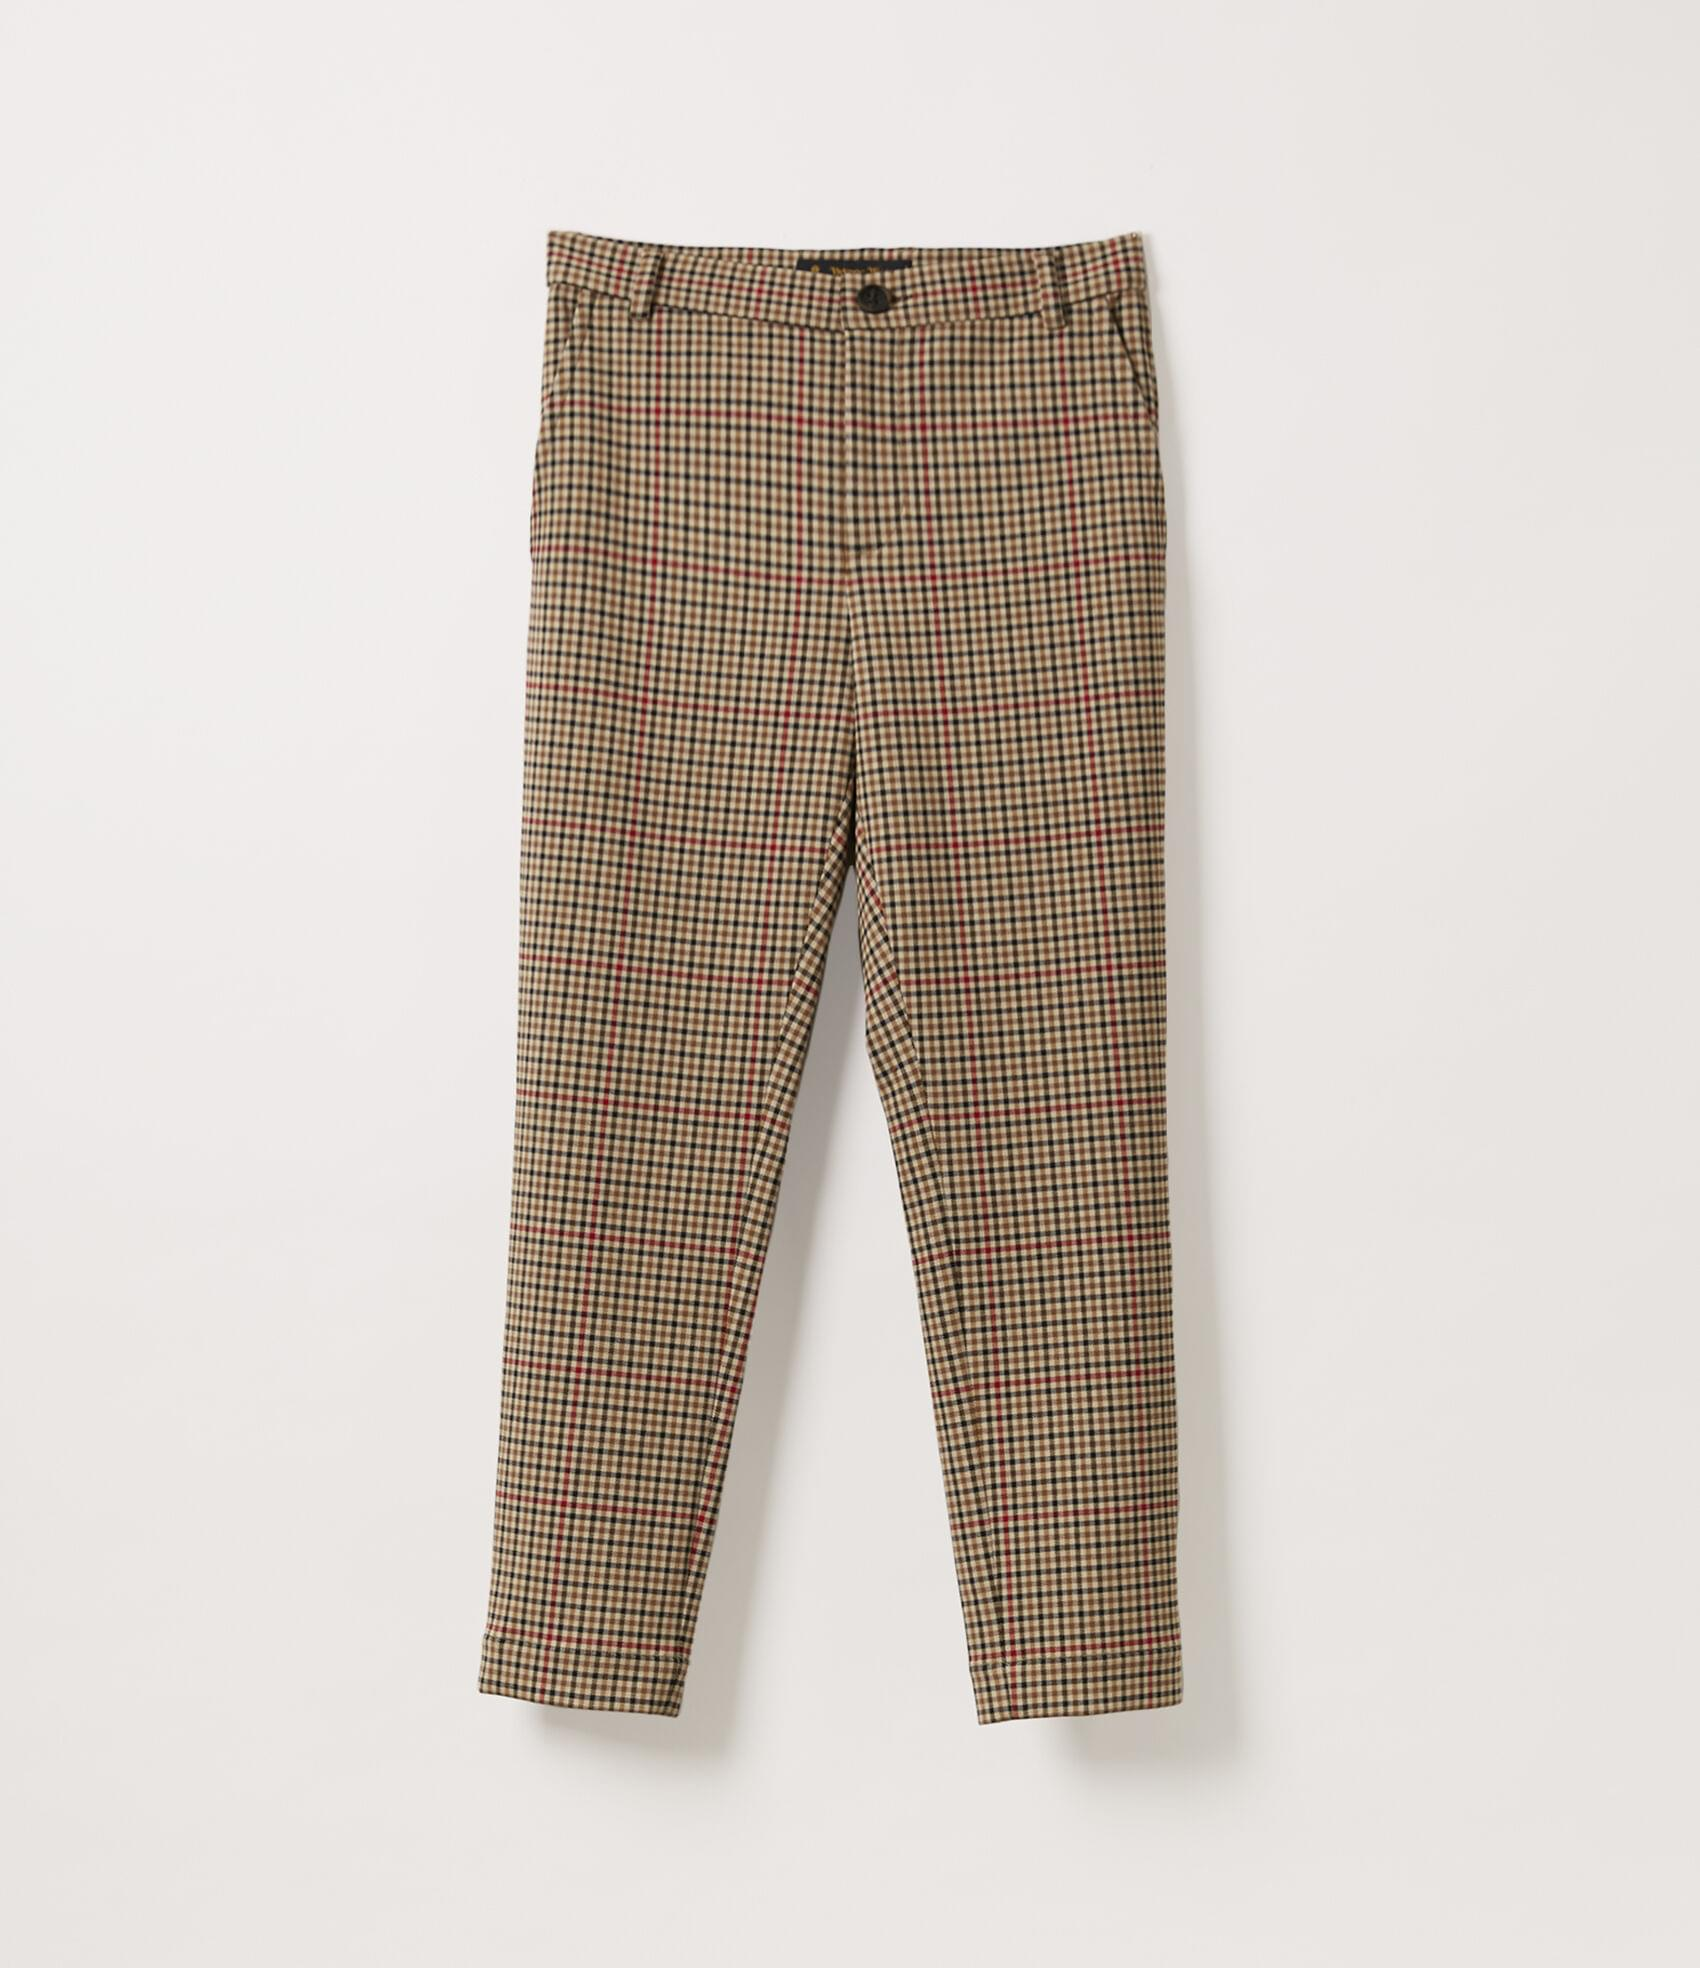 Vivienne Westwood BOY TROUSERS PEASANT CHECK